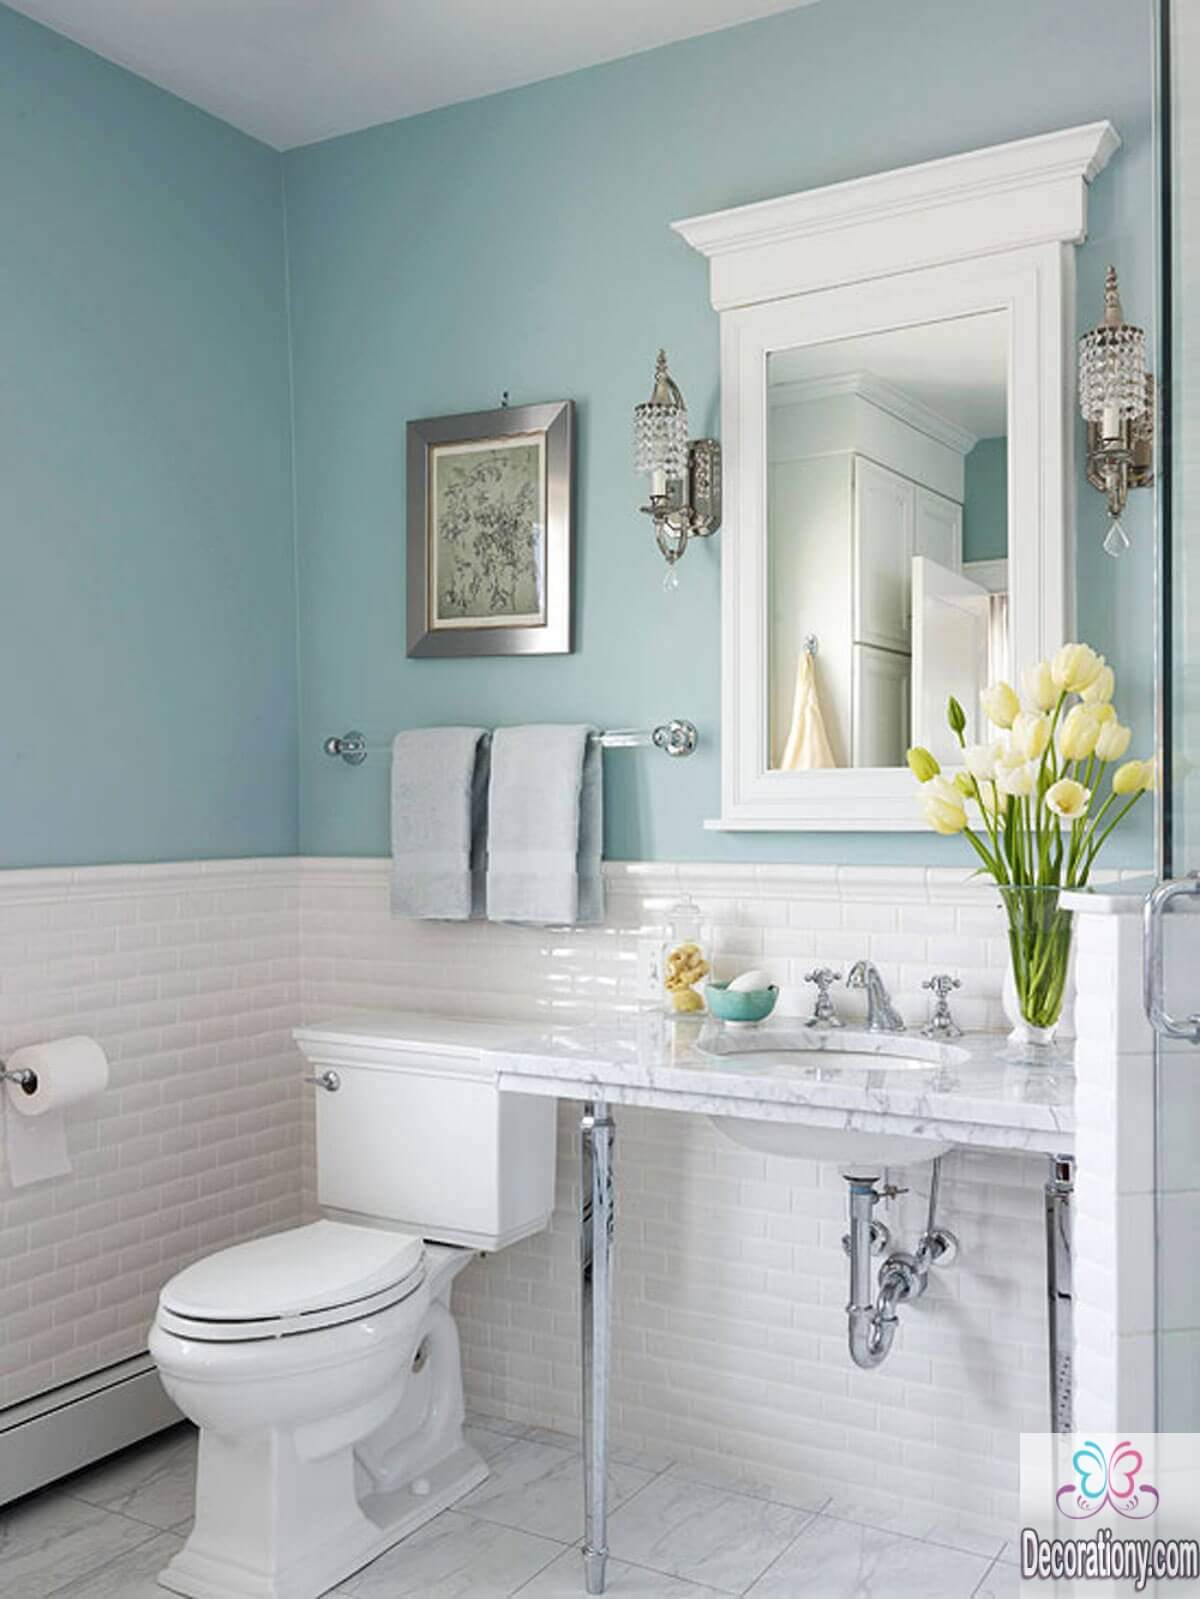 10 affordable colors for small bathrooms decoration y for Small bath remodel ideas